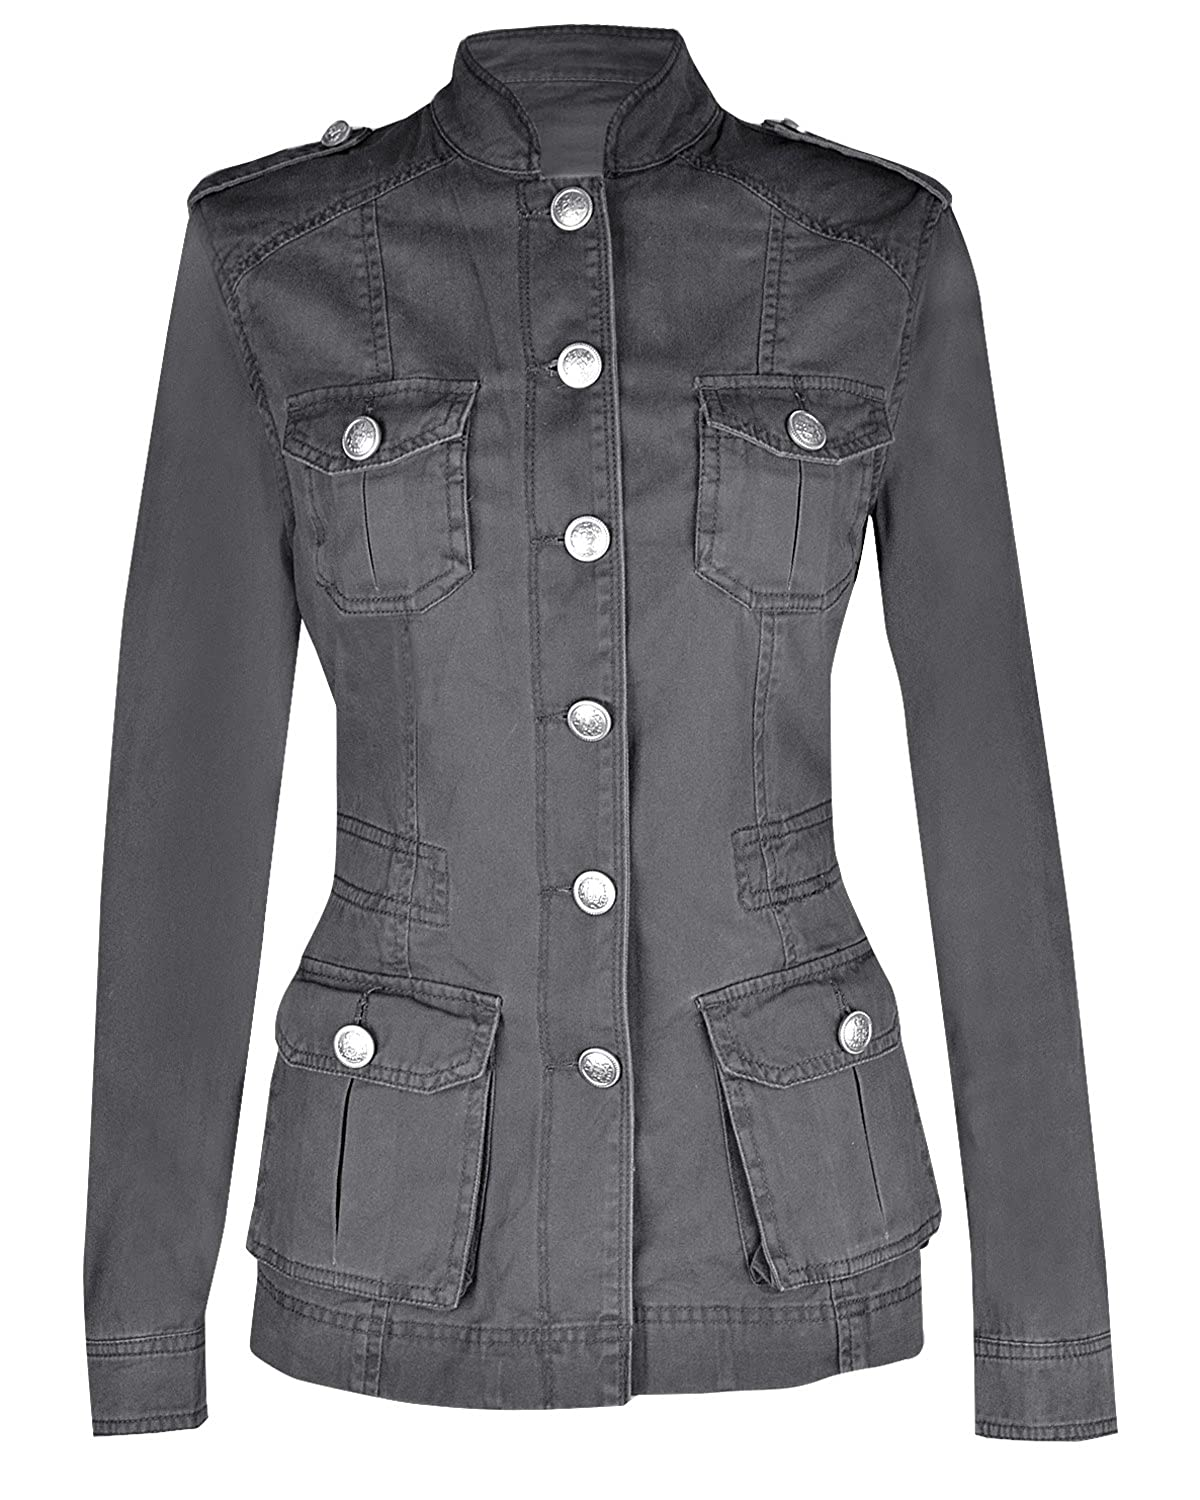 LADIES MILITARY STYLE Summer JACKET: Amazon.co.uk: Clothing